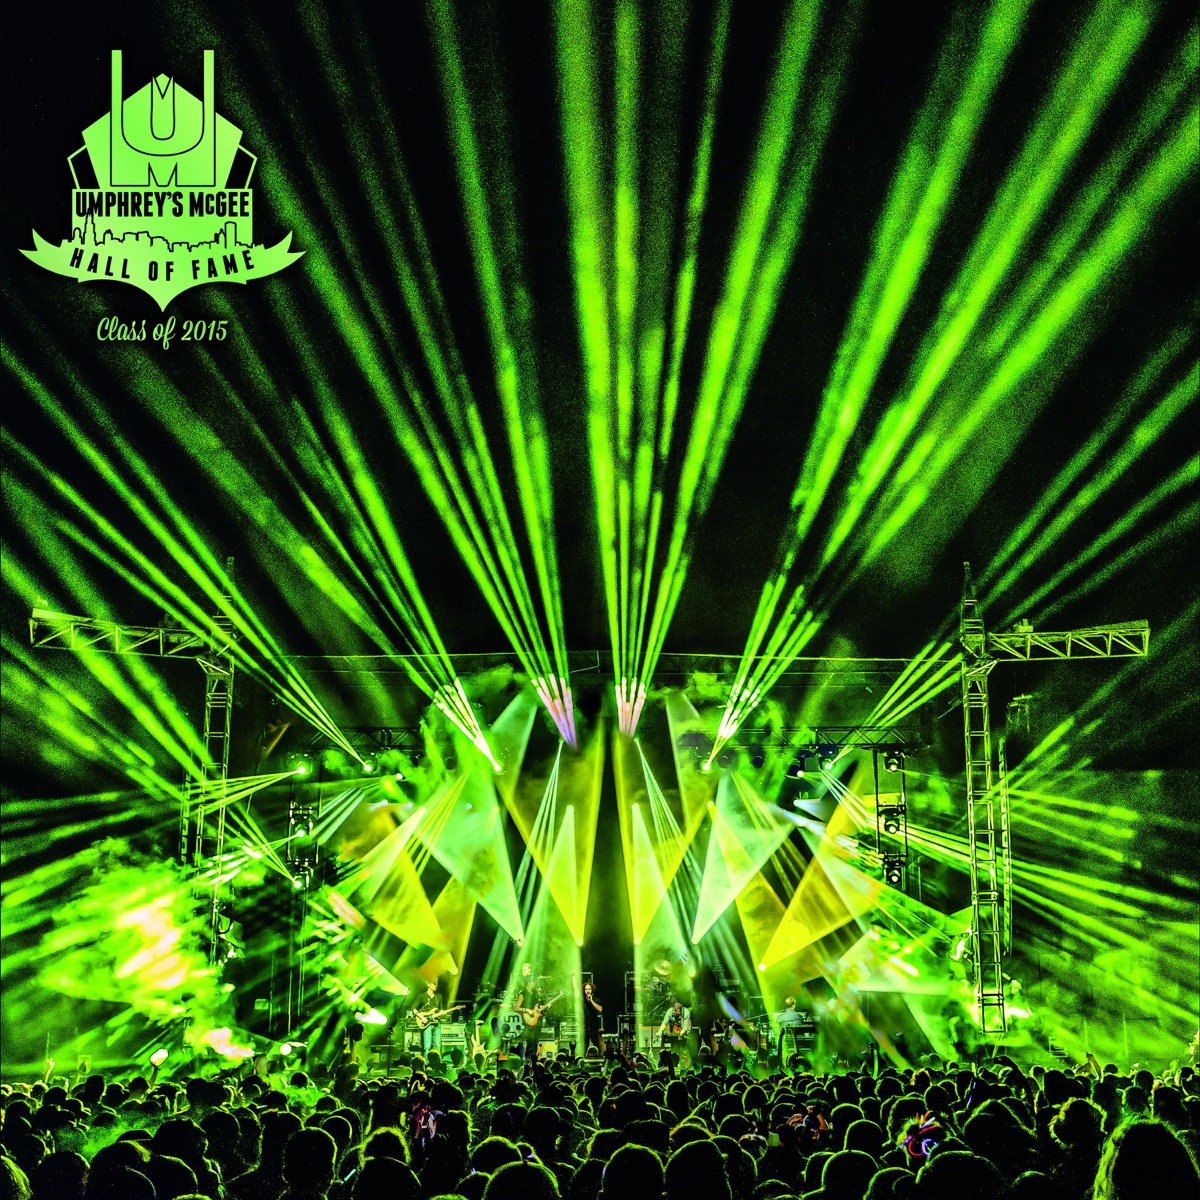 Hall of Fame Class Of 2015 Umphreys McGee CD cover